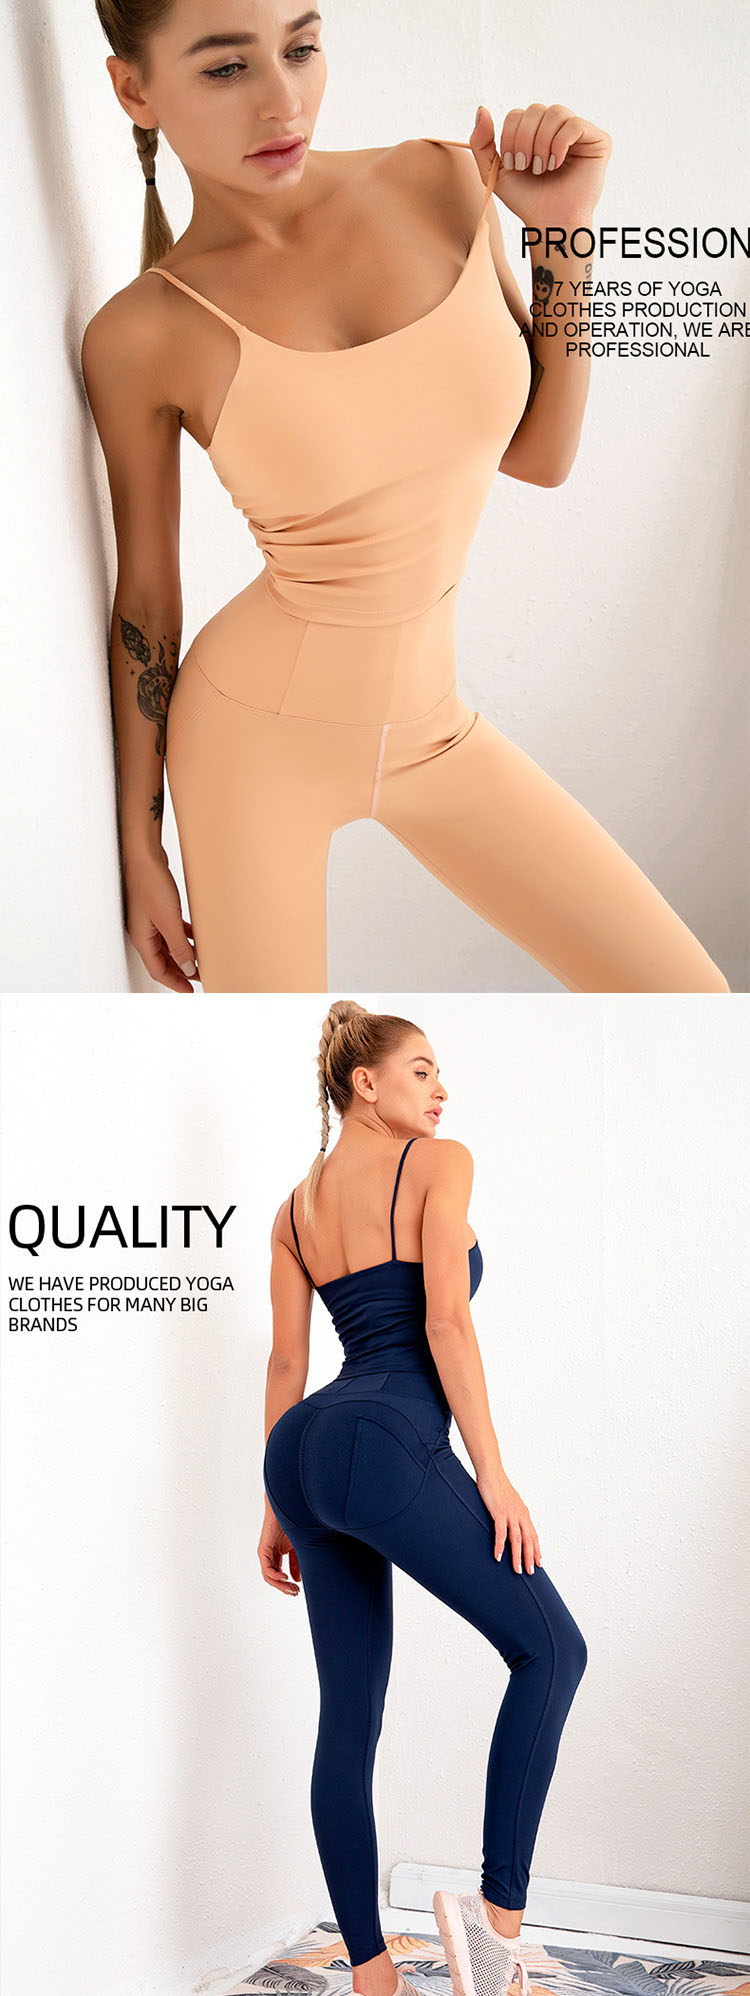 Buttocks lift design, buttocks stand out.